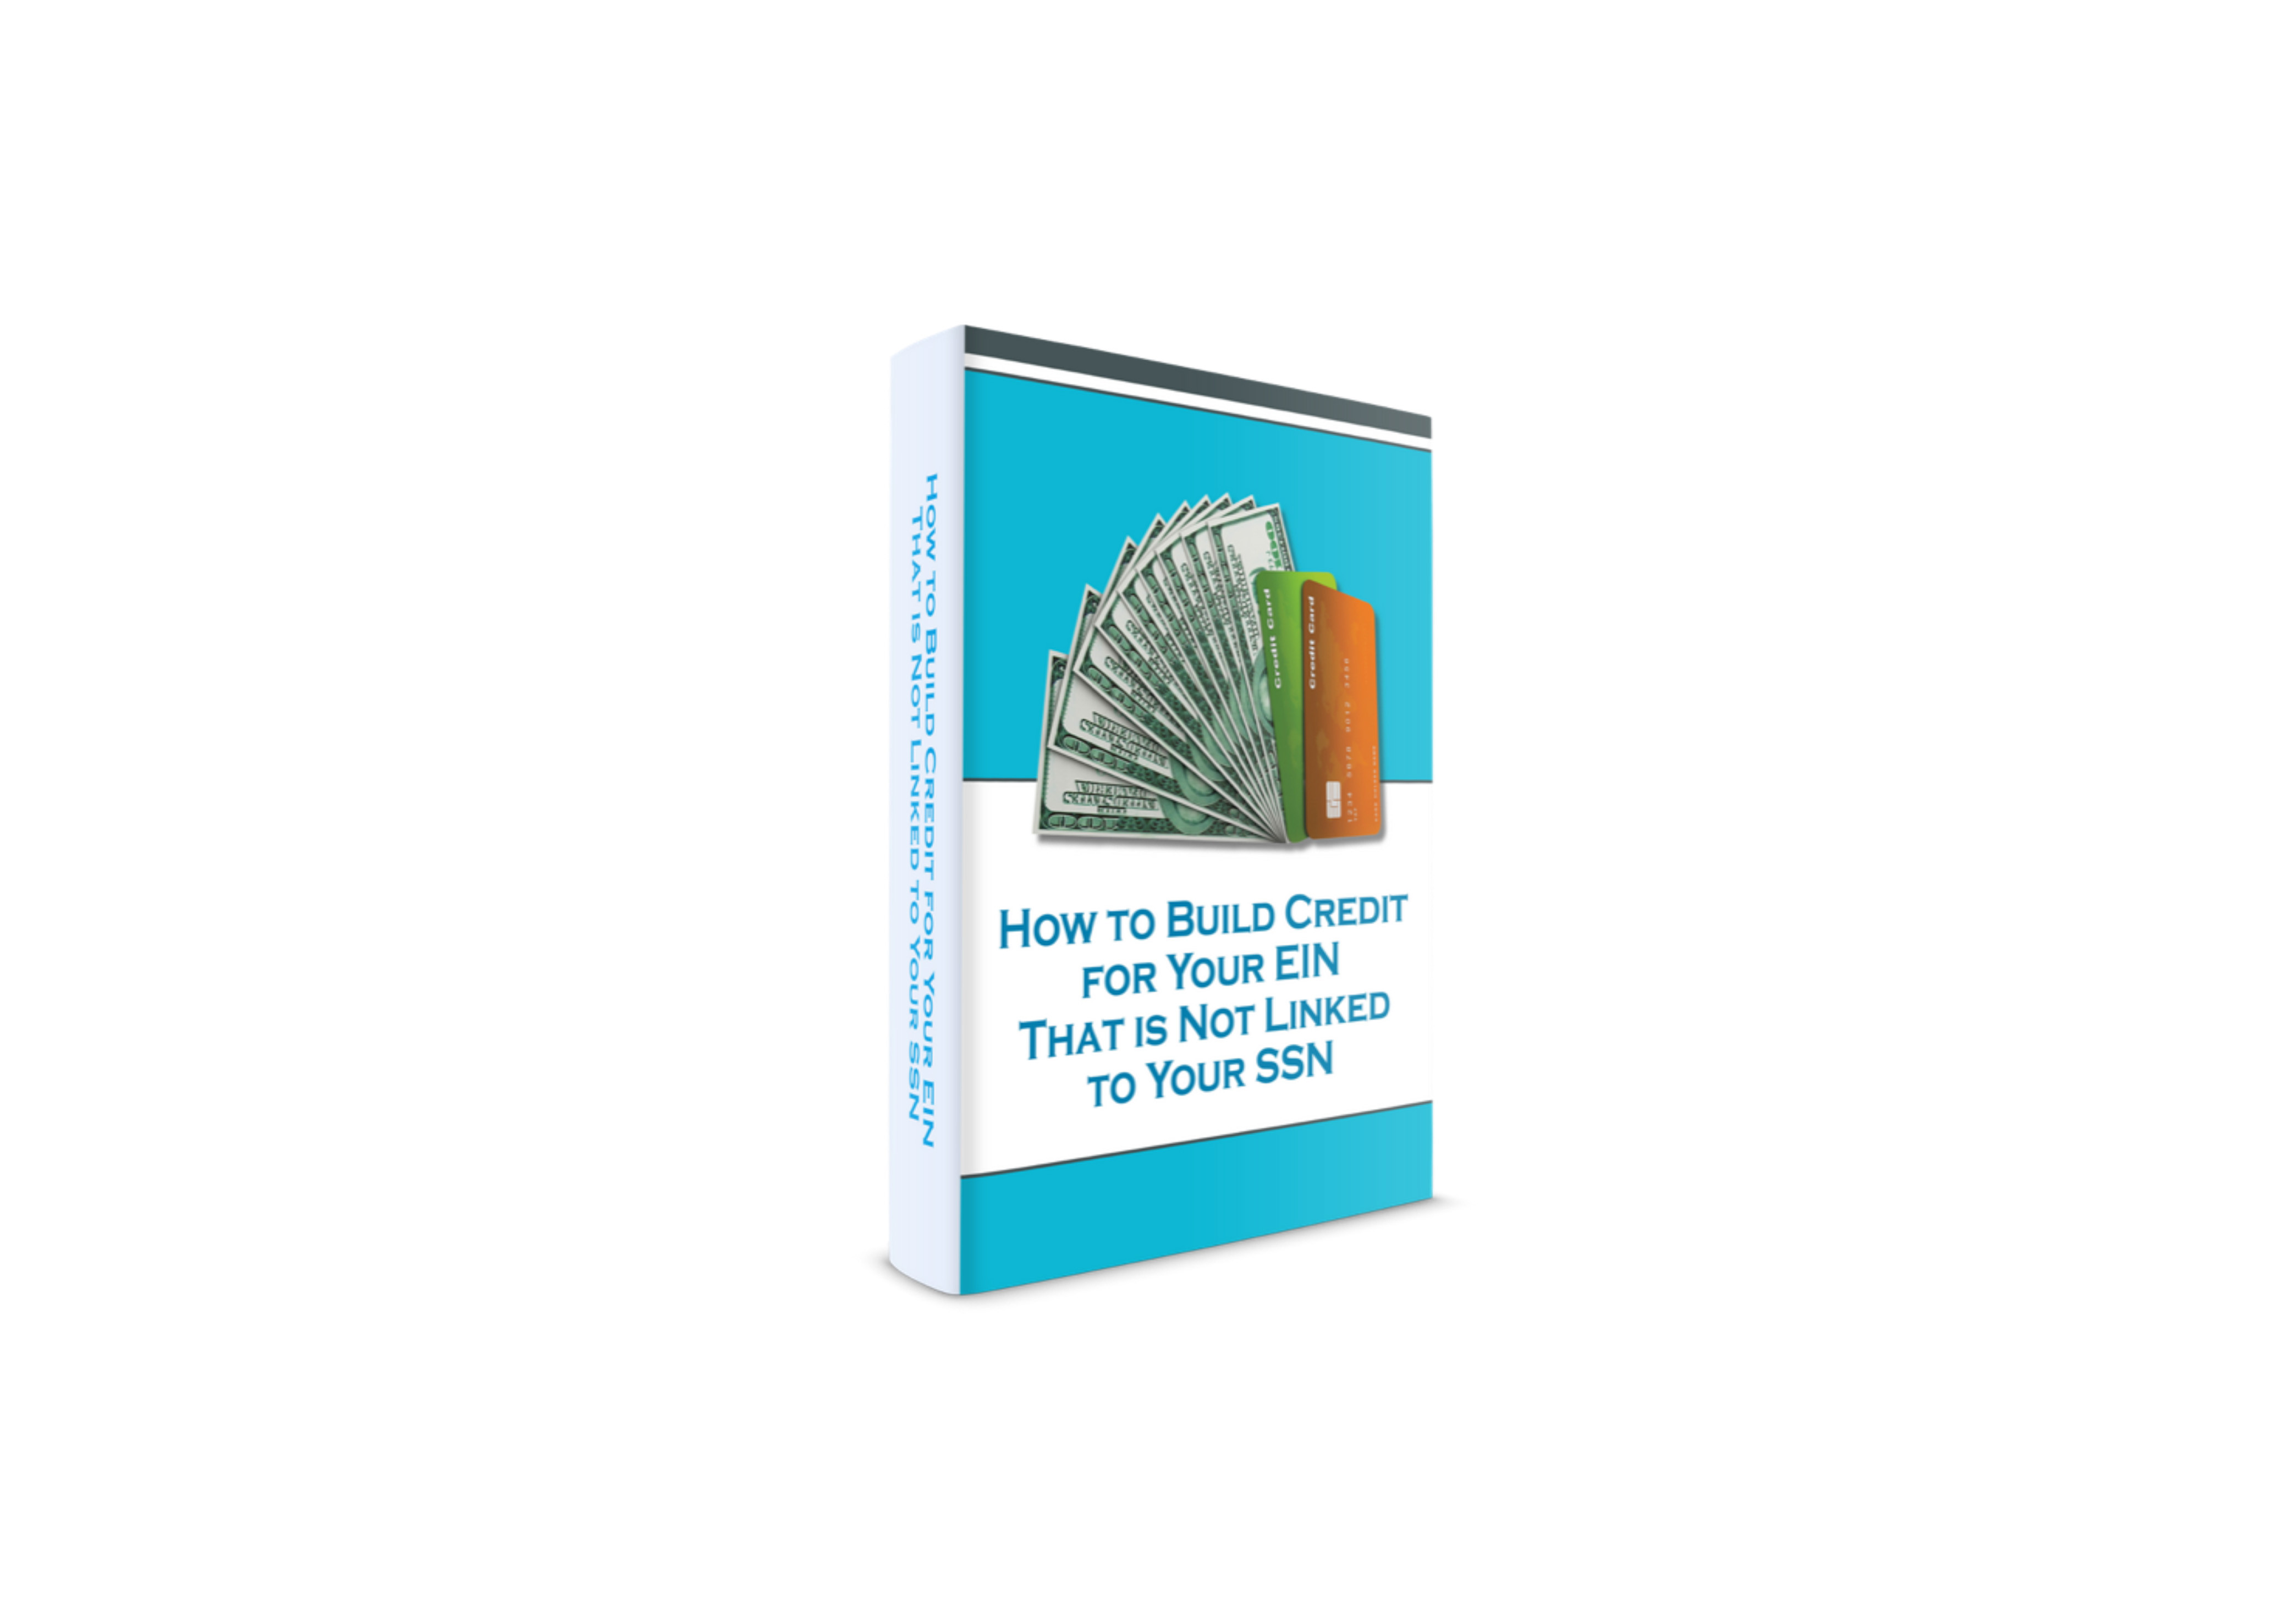 How to build Credit for your EIN EBook